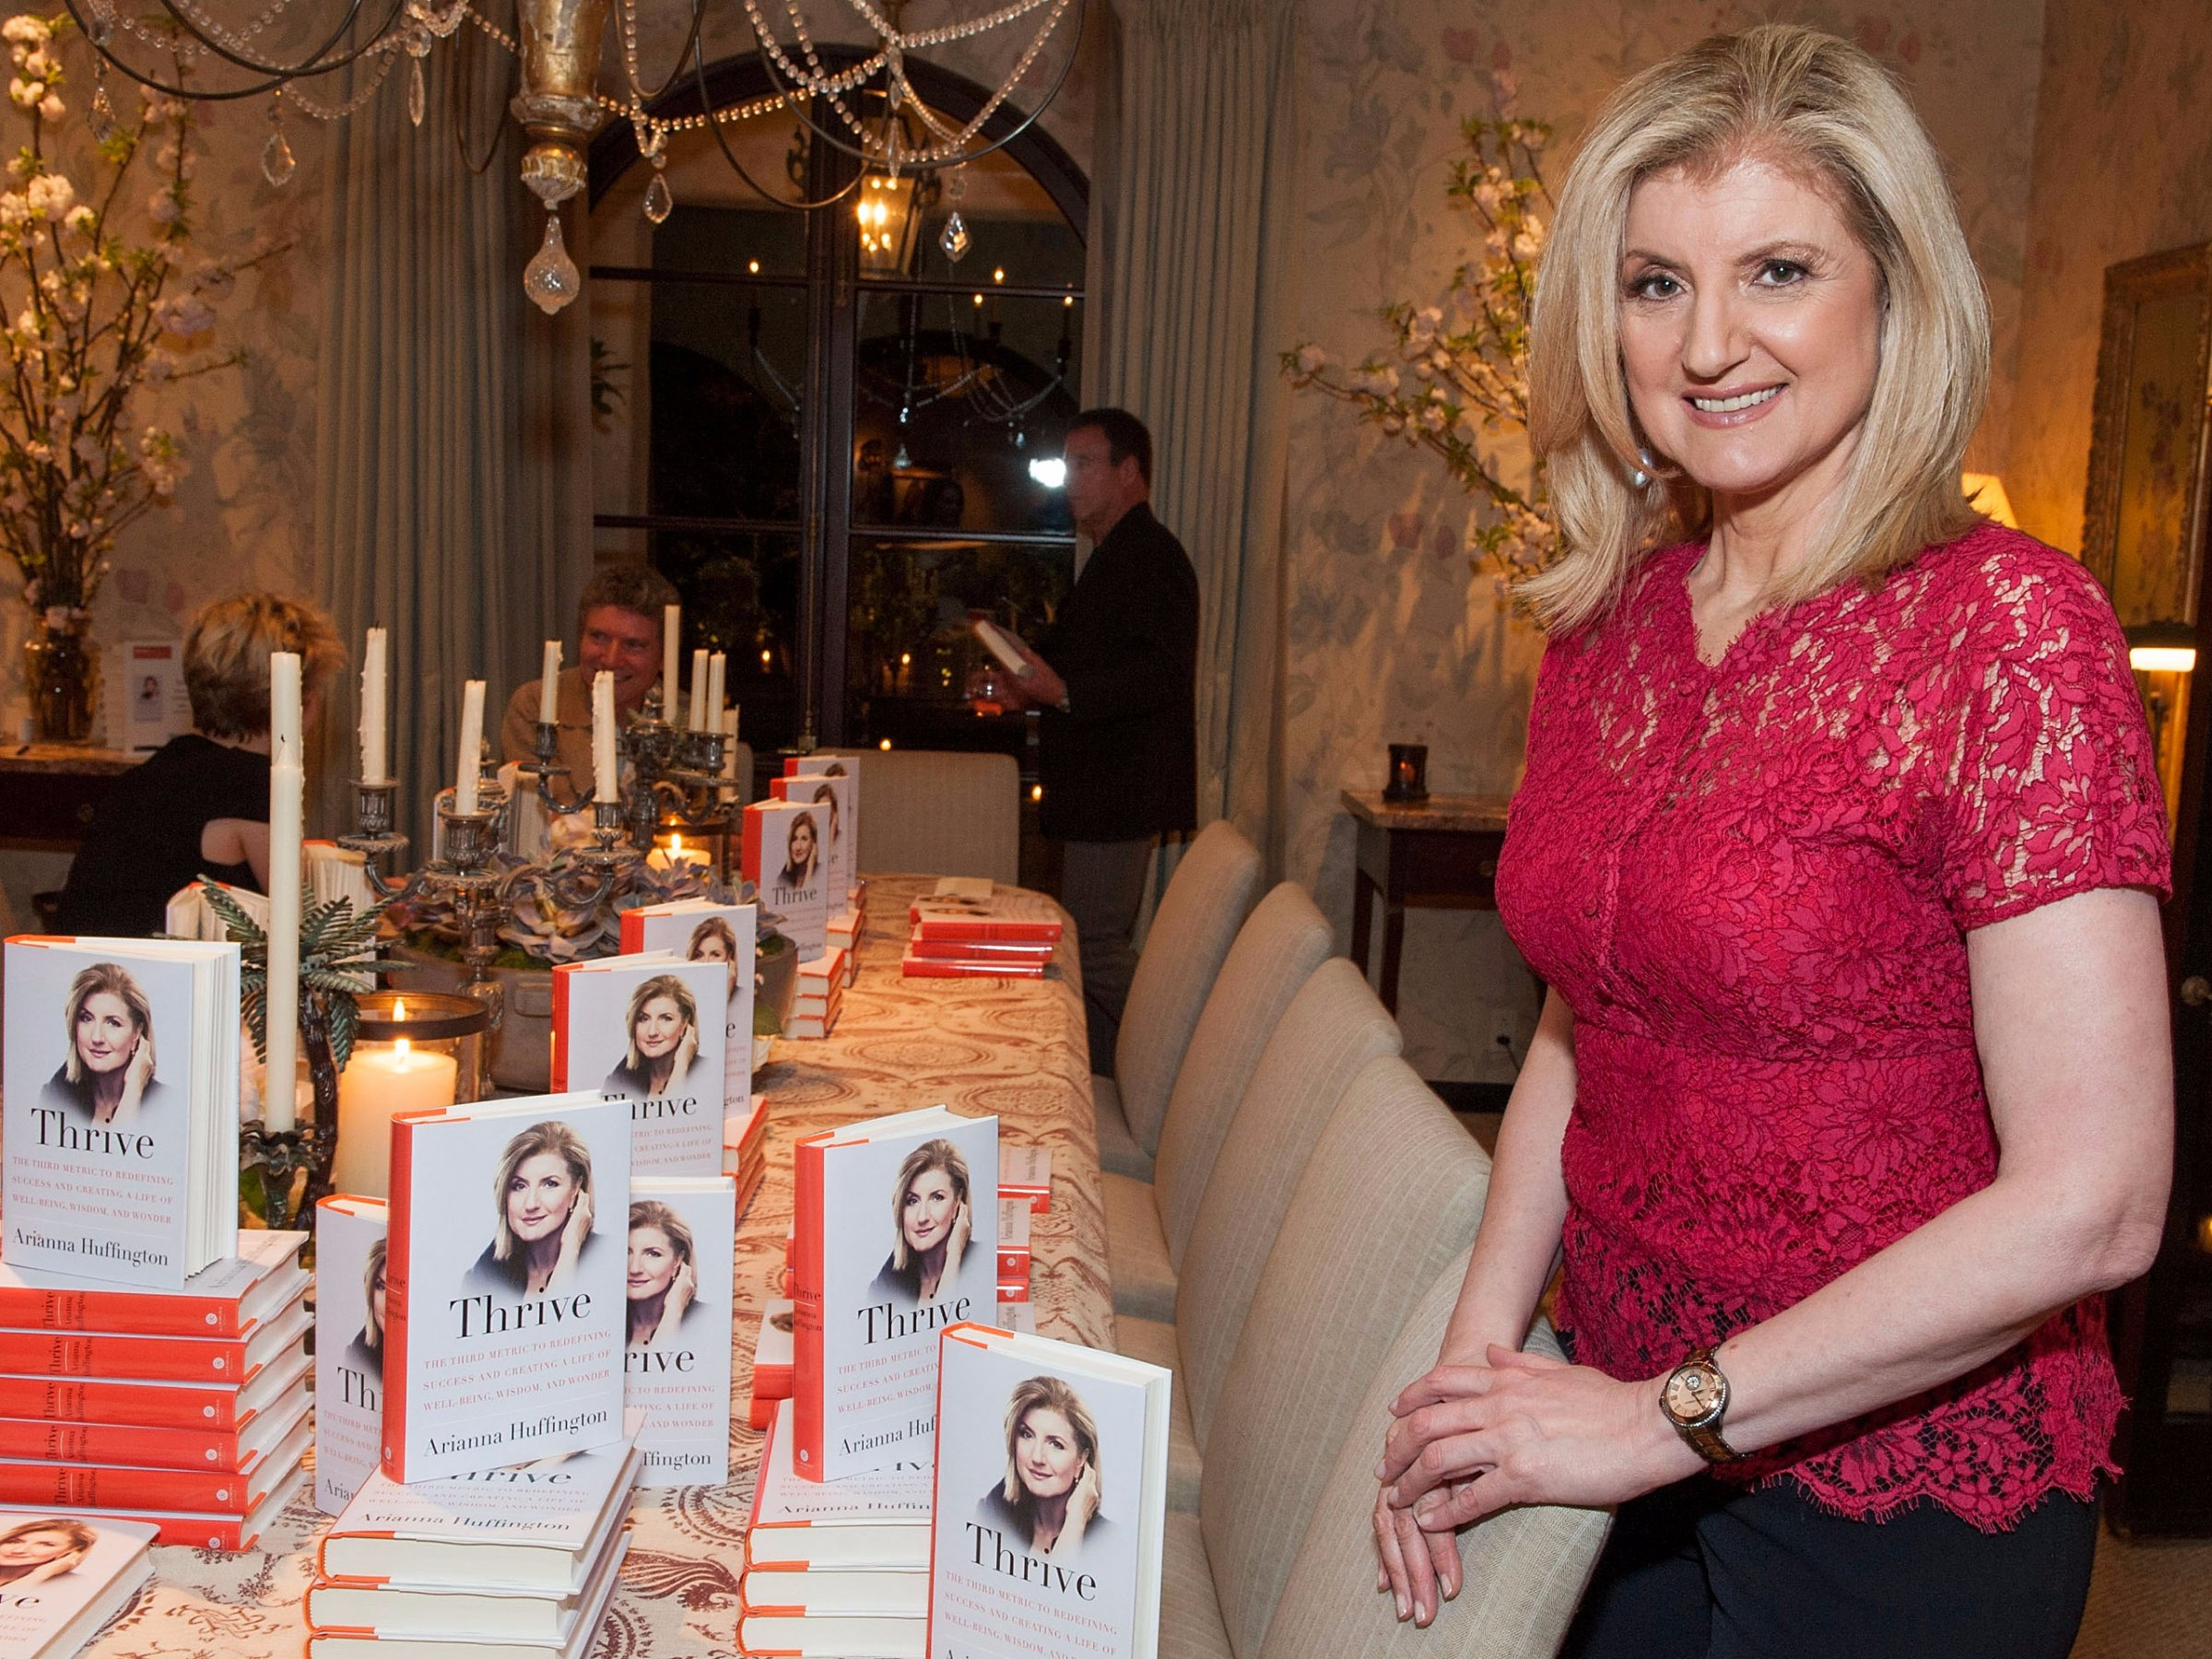 """Arianna Huffington at her """"Thrive"""" book launch.  Valerie Macon/Getty Images    Here's everything you need to know about Arianna Huffington's new company   By  Lara O'Reilly"""